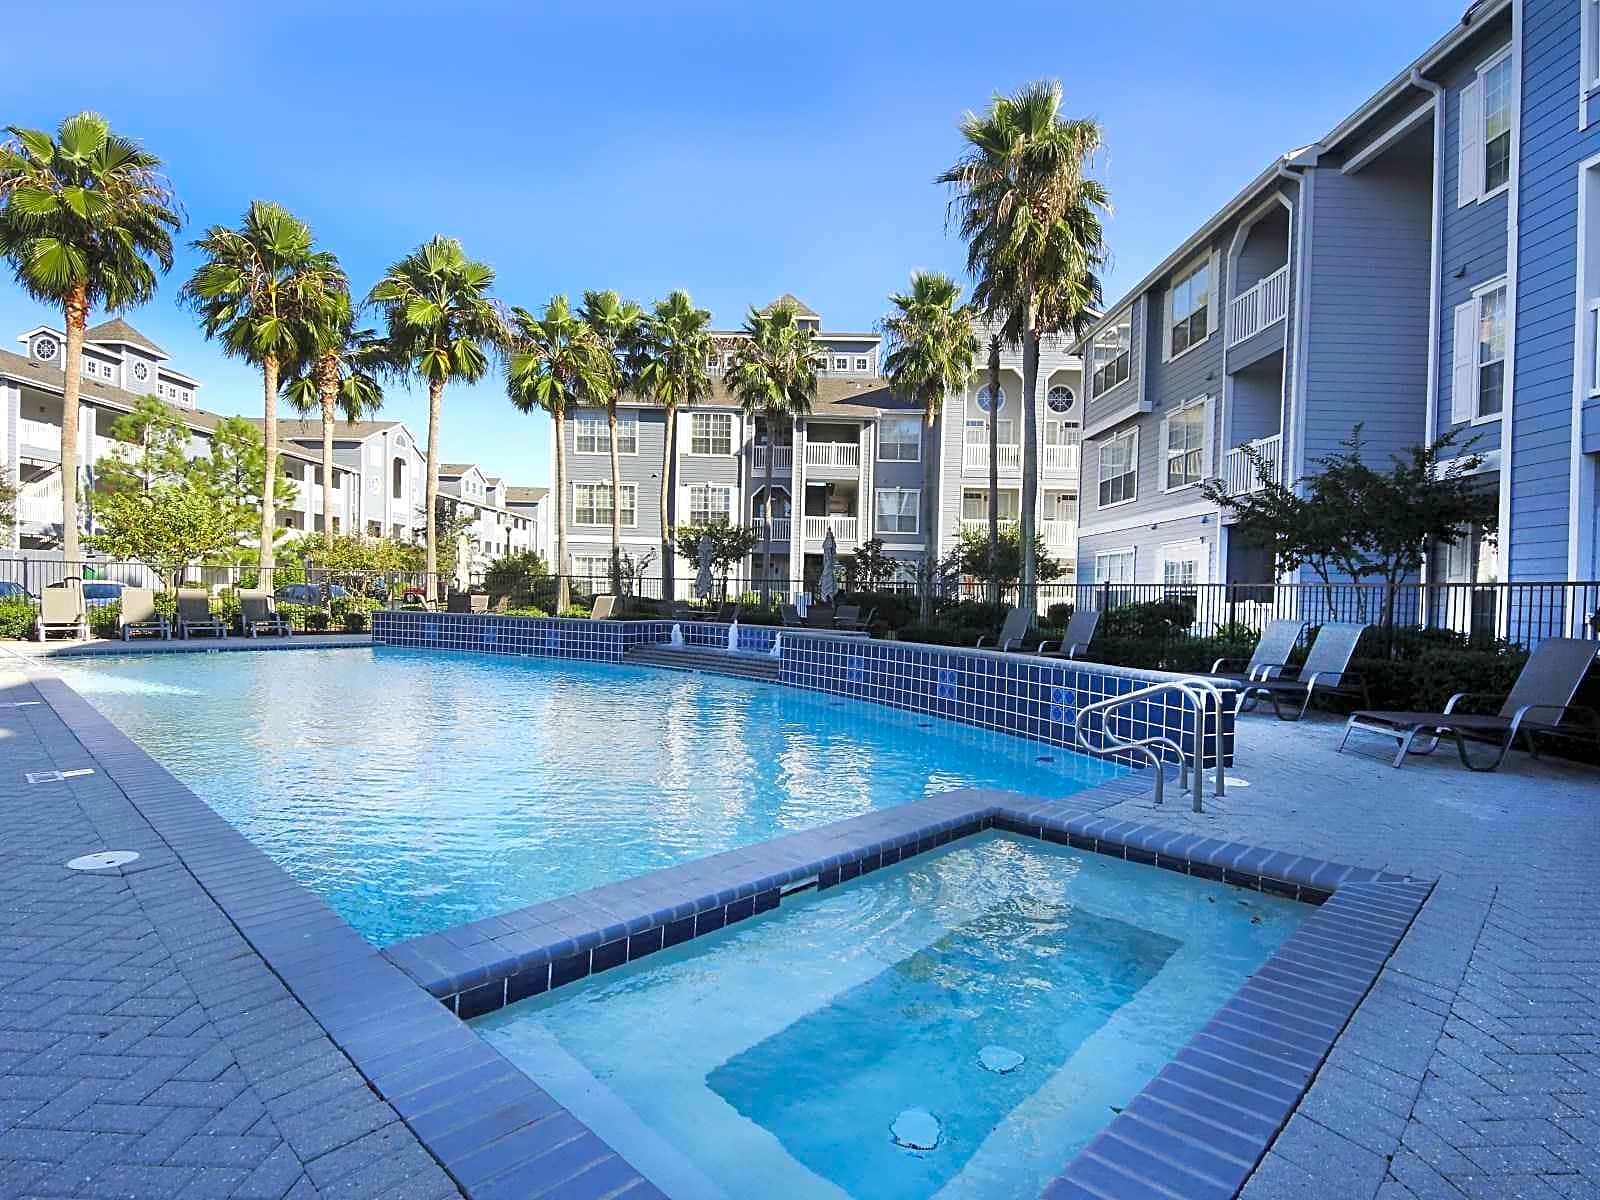 Photo: Slidell Apartment for Rent - $810.00 / month; 1 Bd & 1 Ba